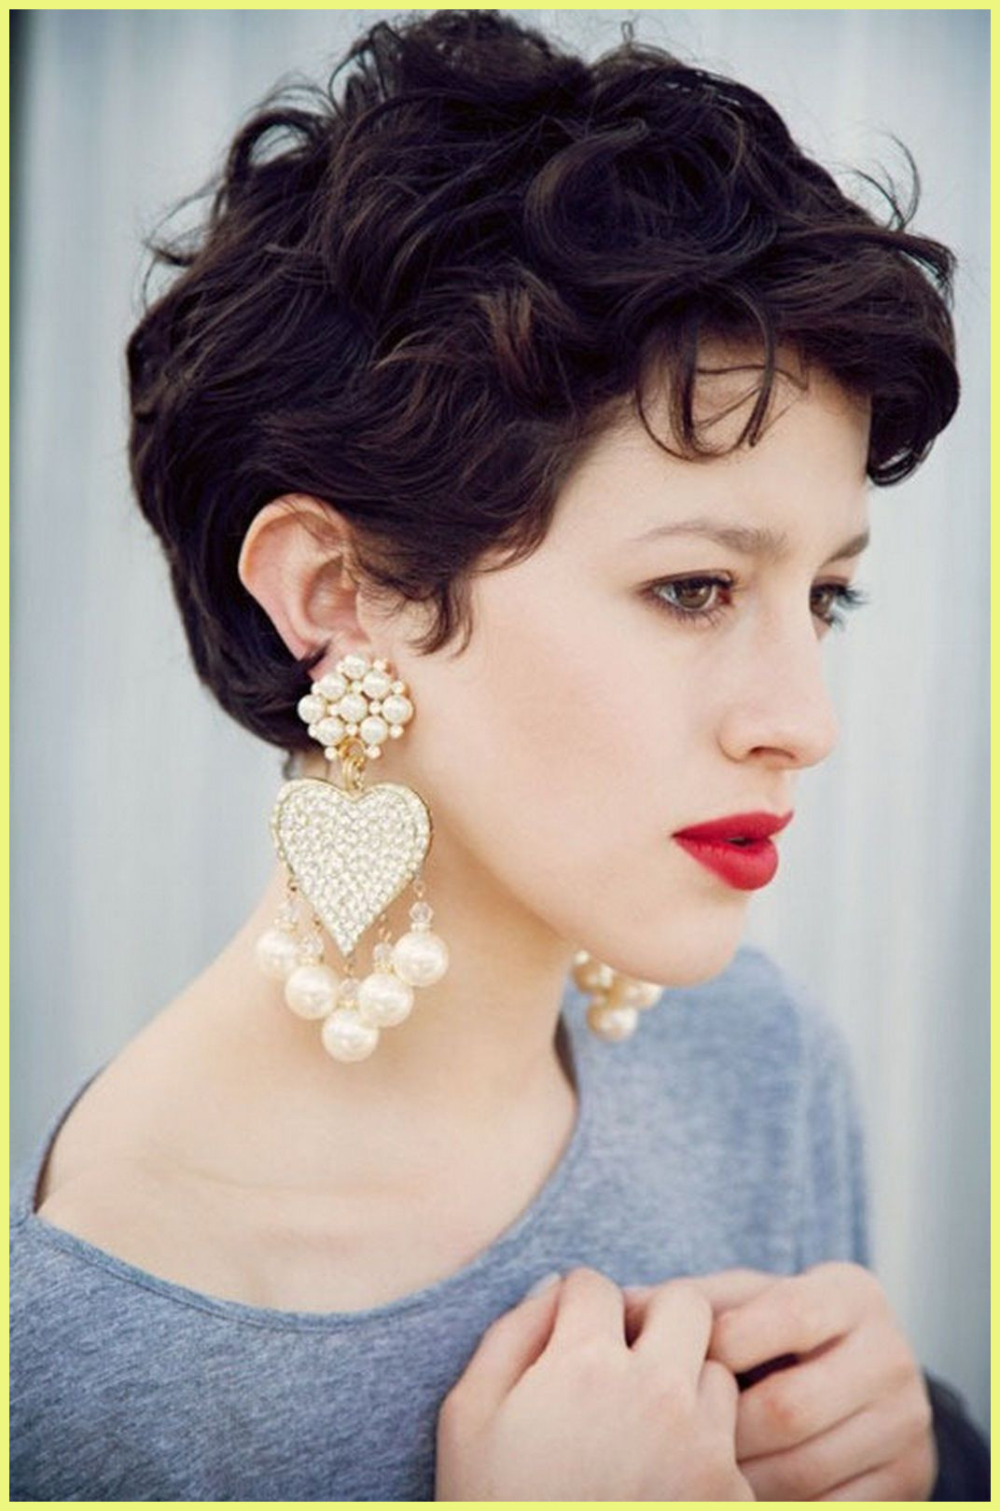 Short Hairstyles For Thick Curly Hair Round Face 69266 Short Hairstyles Thick Hair Round Fa In 2020 Short Hairstyles For Thick Hair Thick Hair Styles Curly Hair Styles